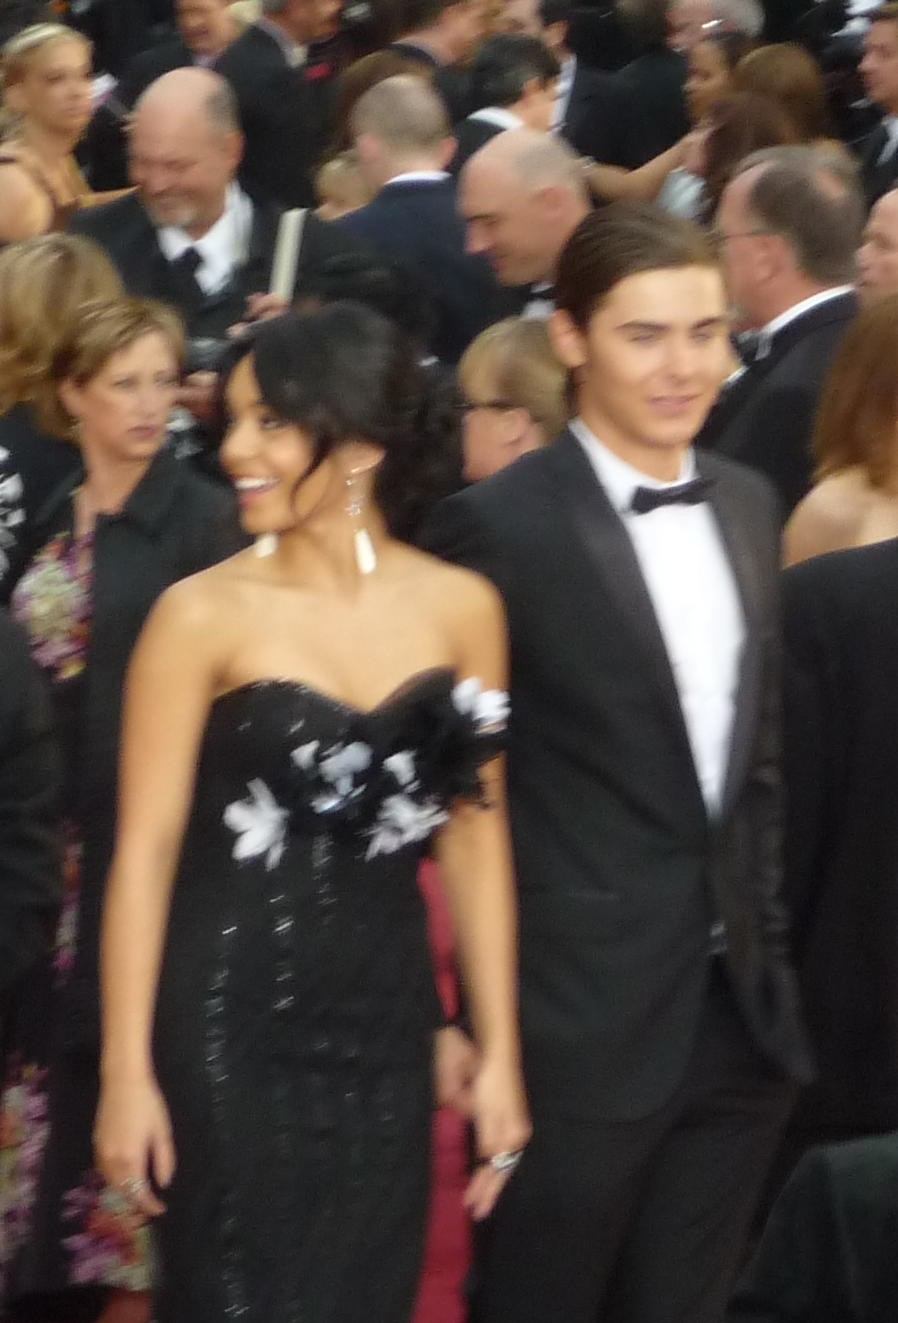 is Vanessa Hudgens dating Zac Efron 2012 is Taylor Swift dating Harry Styles 2014